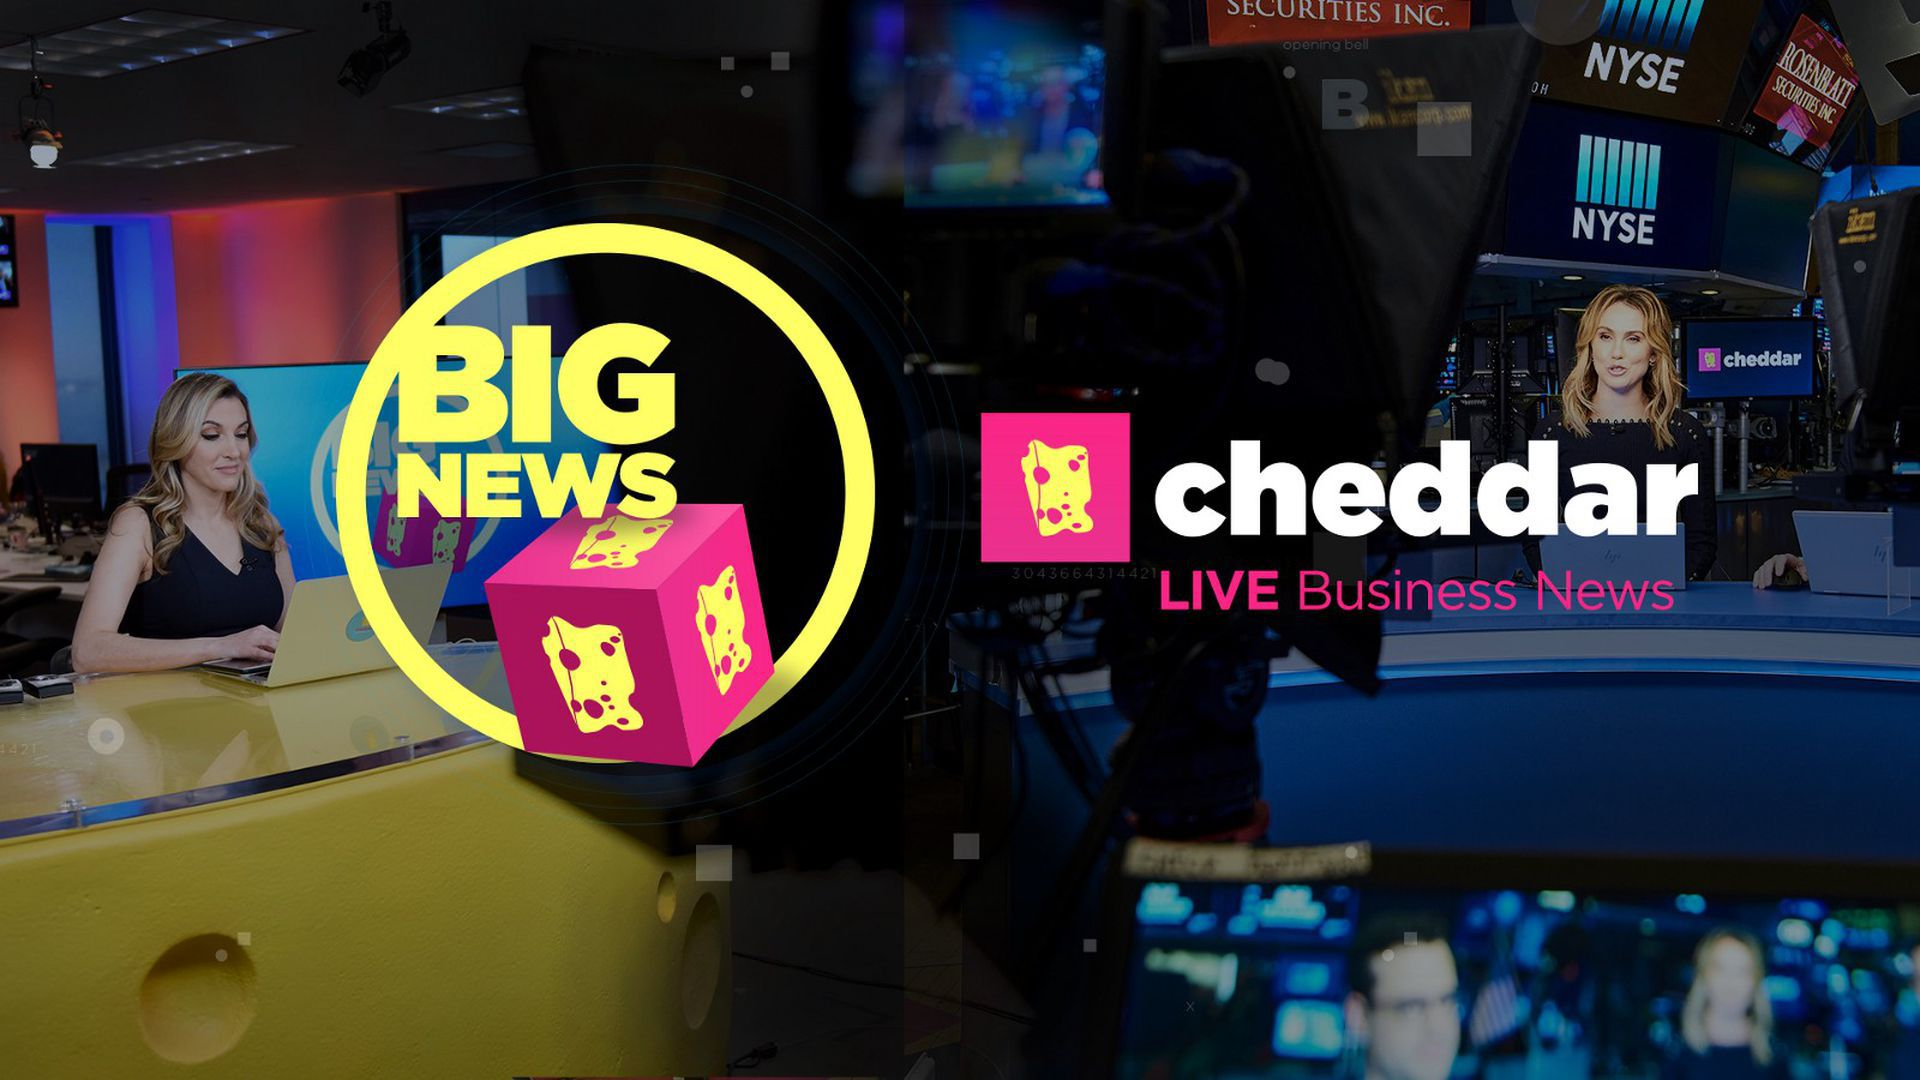 Cheddar is acquiring Rate My Professors - Axios